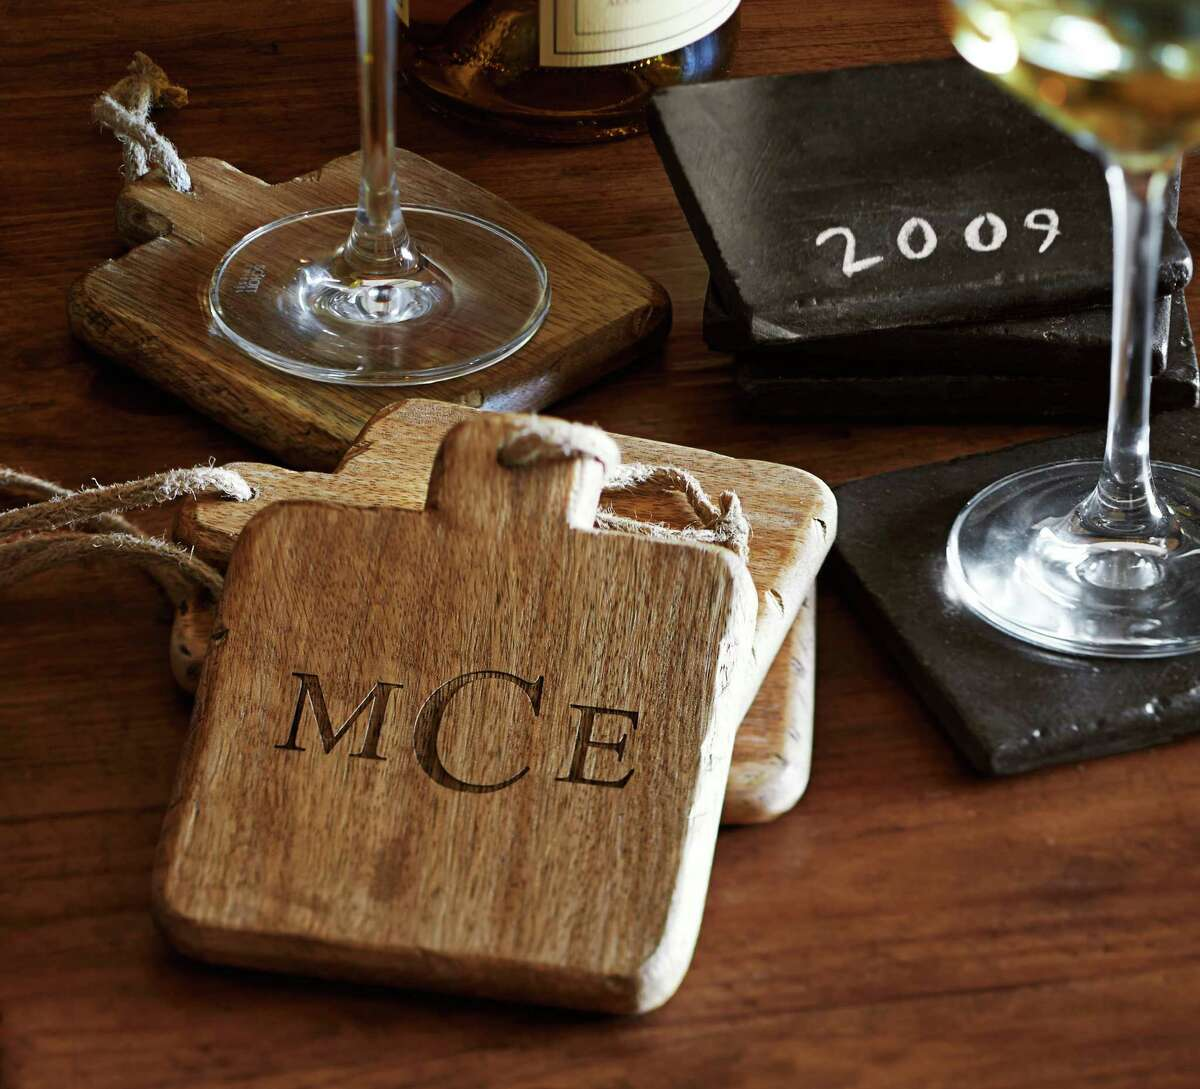 This photo provided by Pottery Barn shows wooden drink coasters that add a casual and appealing element of texture to entertaining accessories. Easier to clean than fabric coasters, they're also useful under warm serveware at the table. (AP Photo/Pottery Barn, Alec Hemer, Joseph Antonetti)